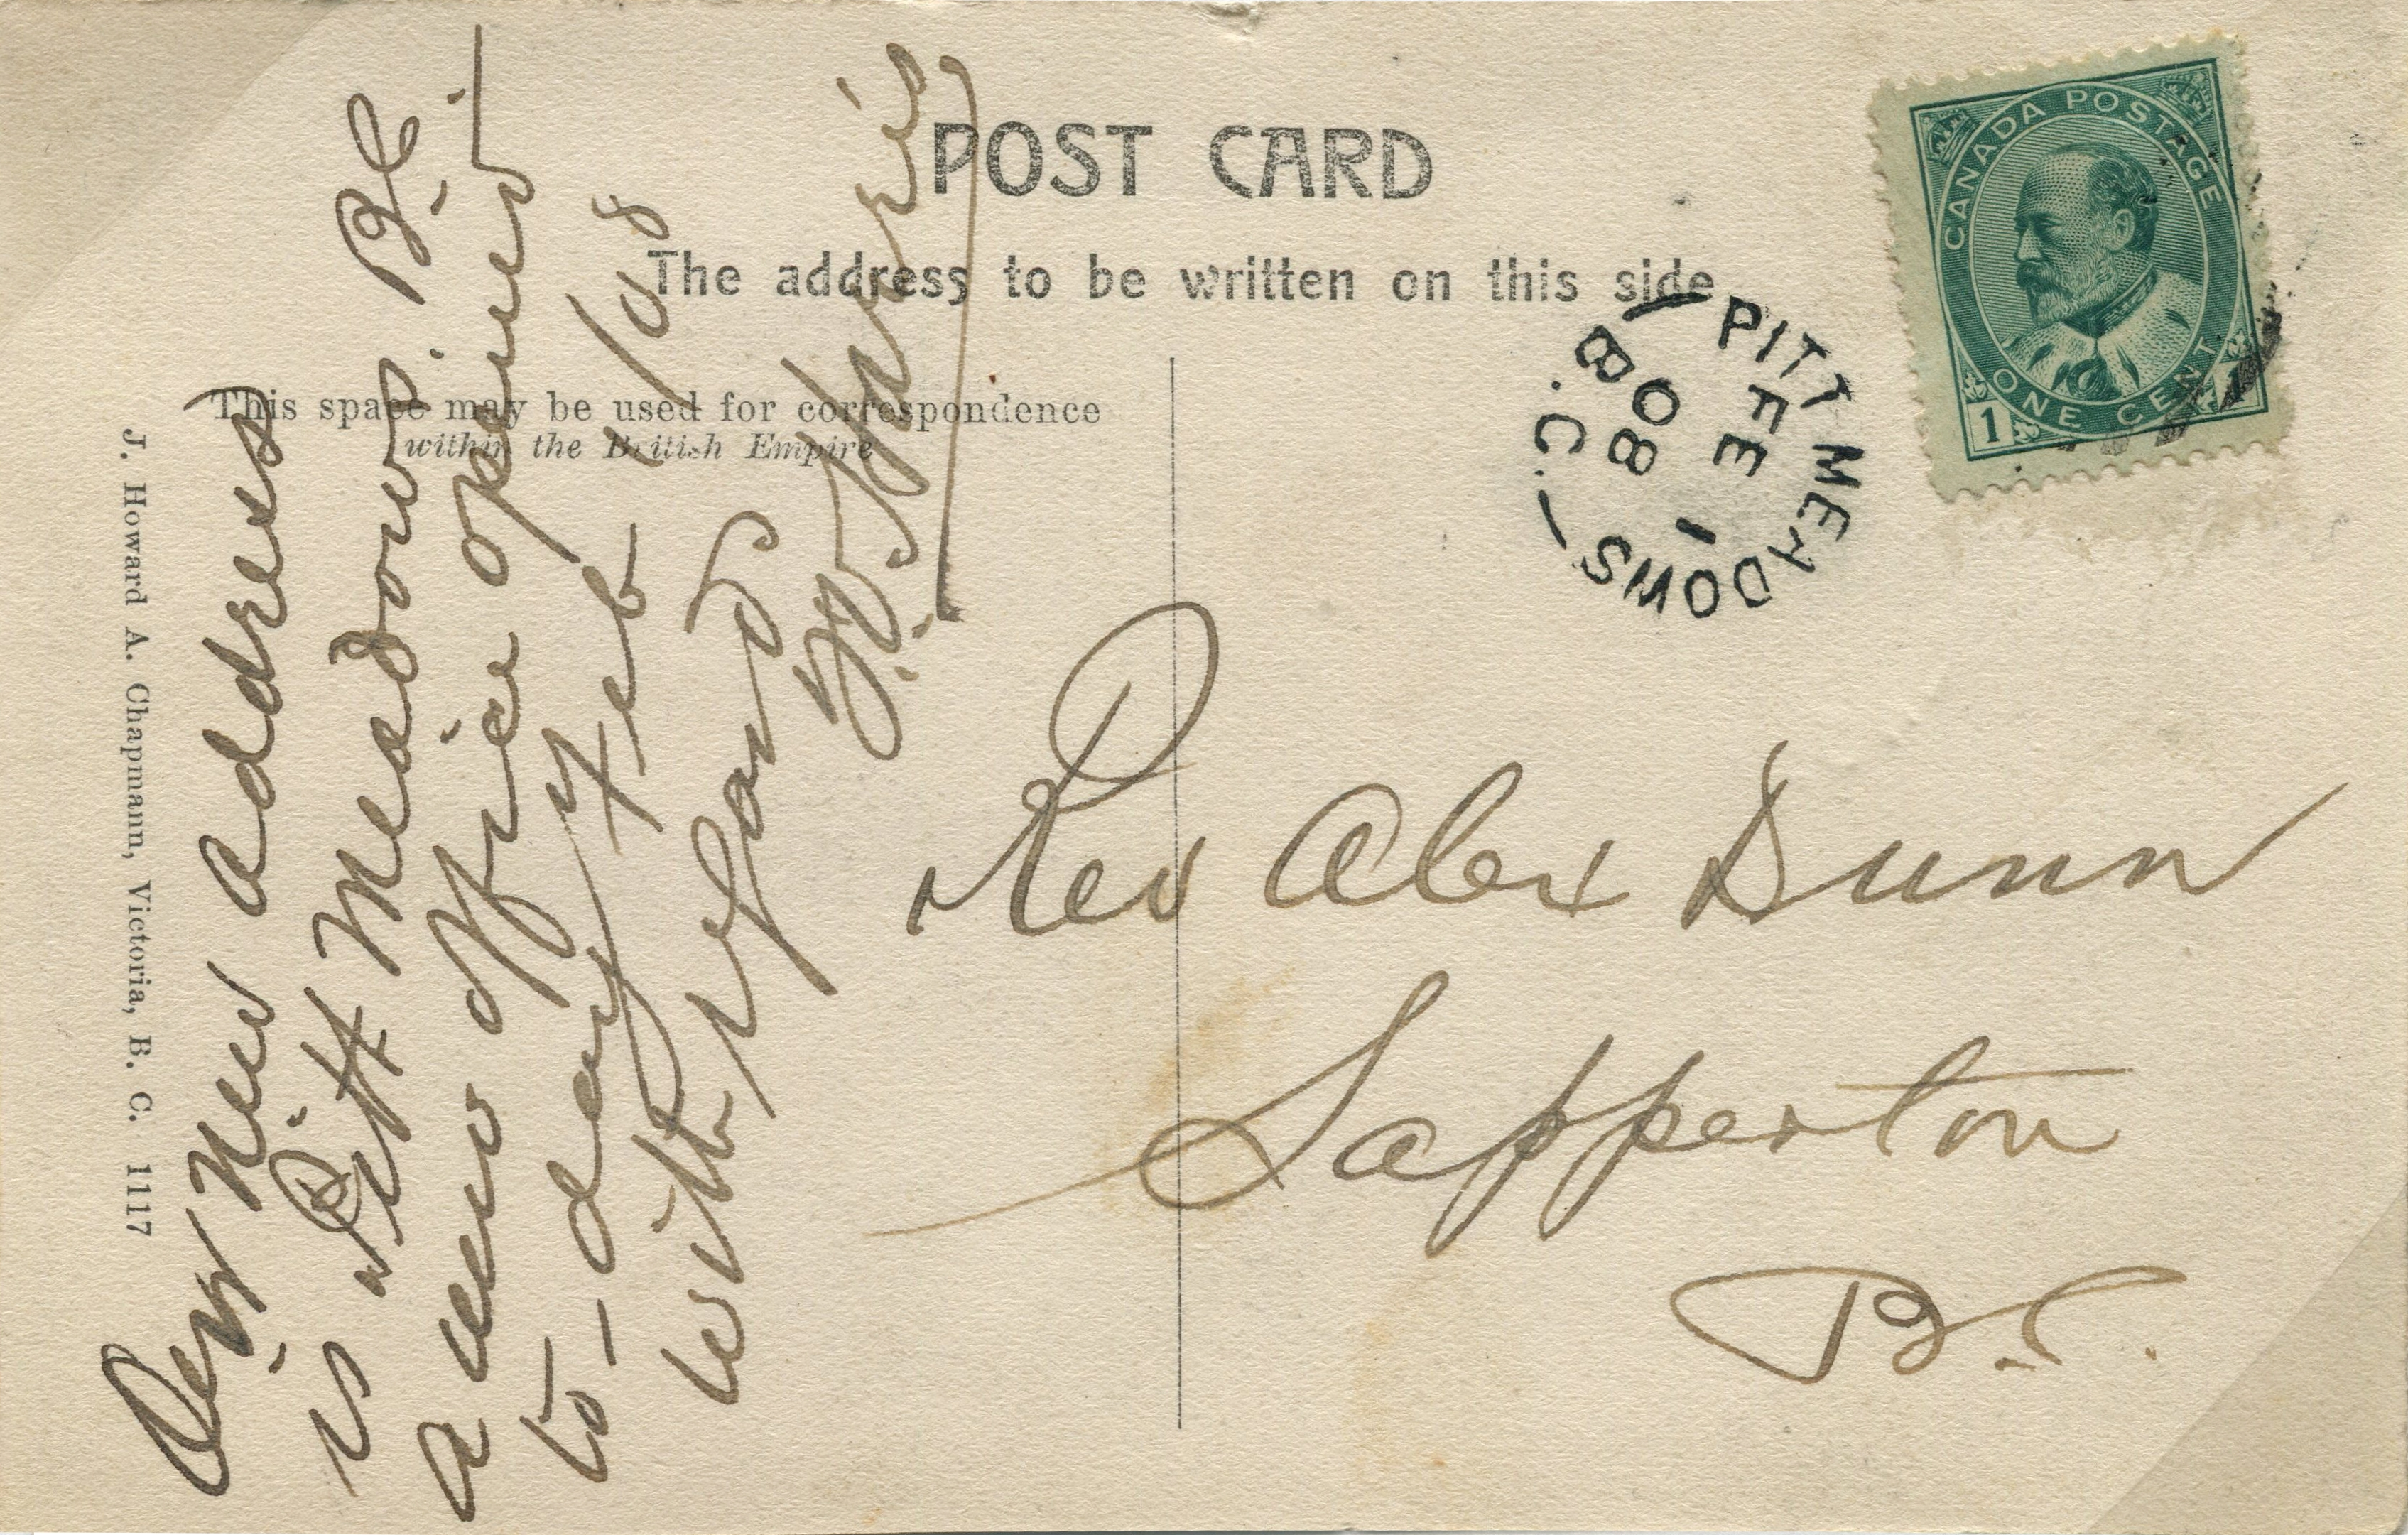 Pitt Meadows Post Card stamped 1908